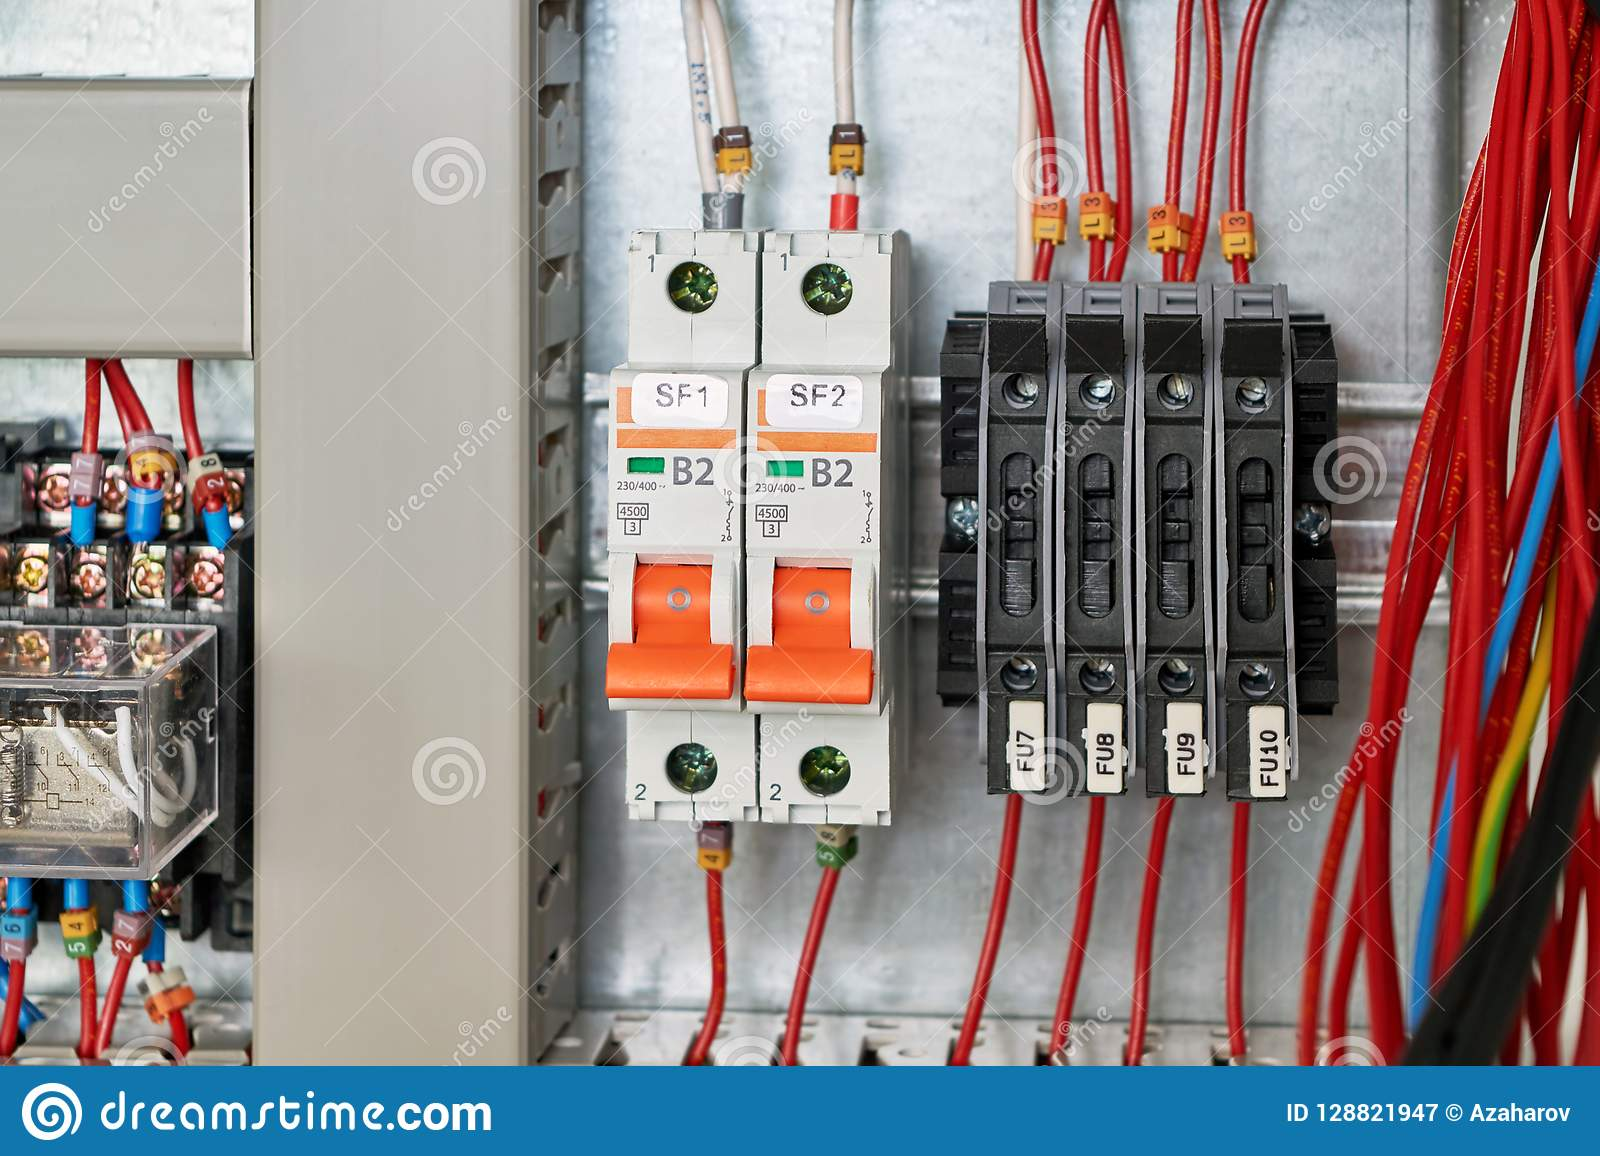 In The Electrical Cabinet Circuit Breakers And Fuse Holders ... Wiring Or Breaker on fuse breaker, concrete breaker, socket breaker,